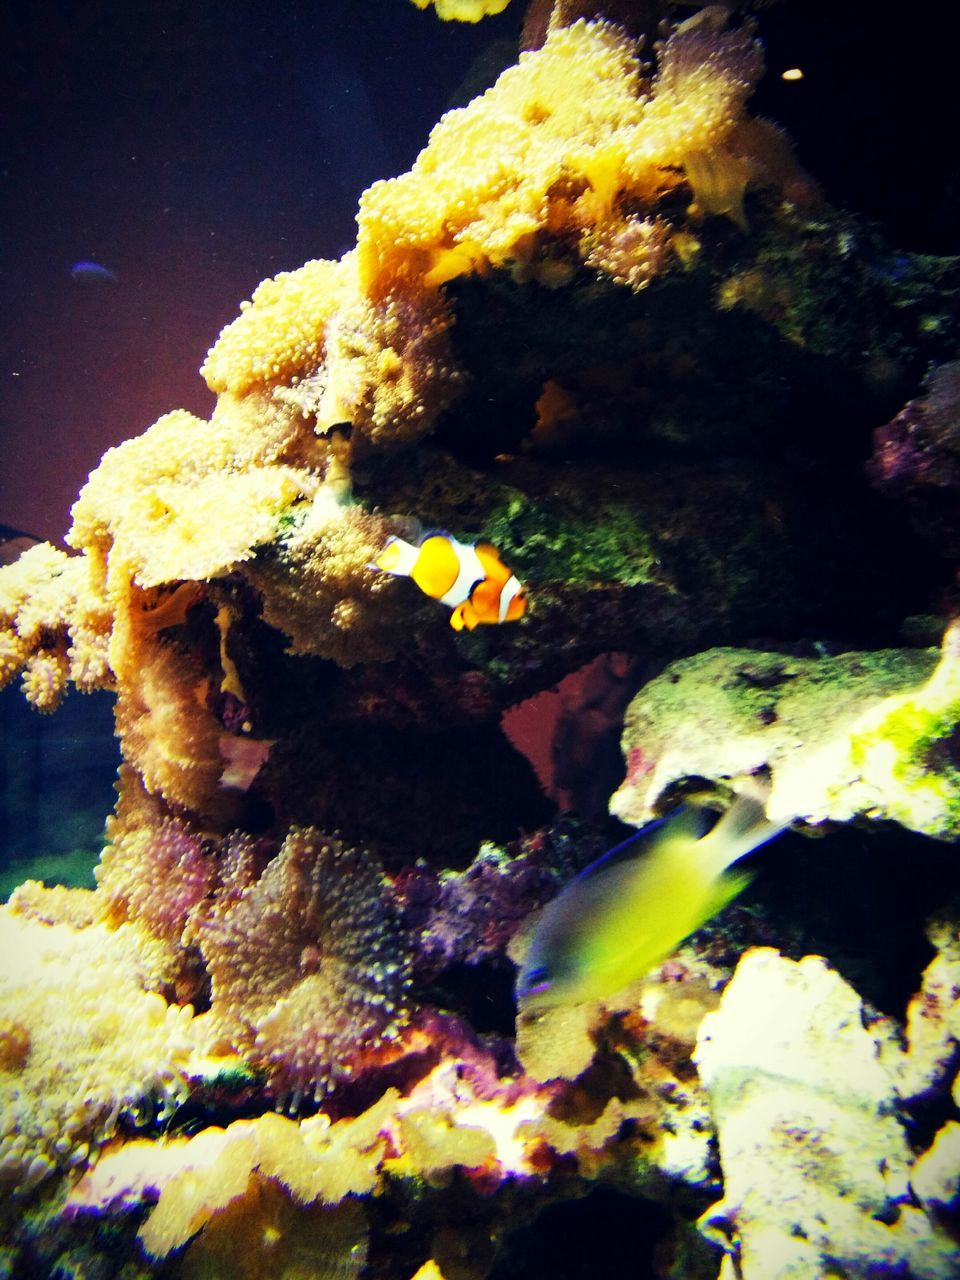 underwater, sea life, undersea, water, close-up, coral, no people, animals in the wild, animal themes, fish, sea, one animal, yellow, nature, clown fish, aquarium, indoors, swimming, beauty in nature, day, sea anemone